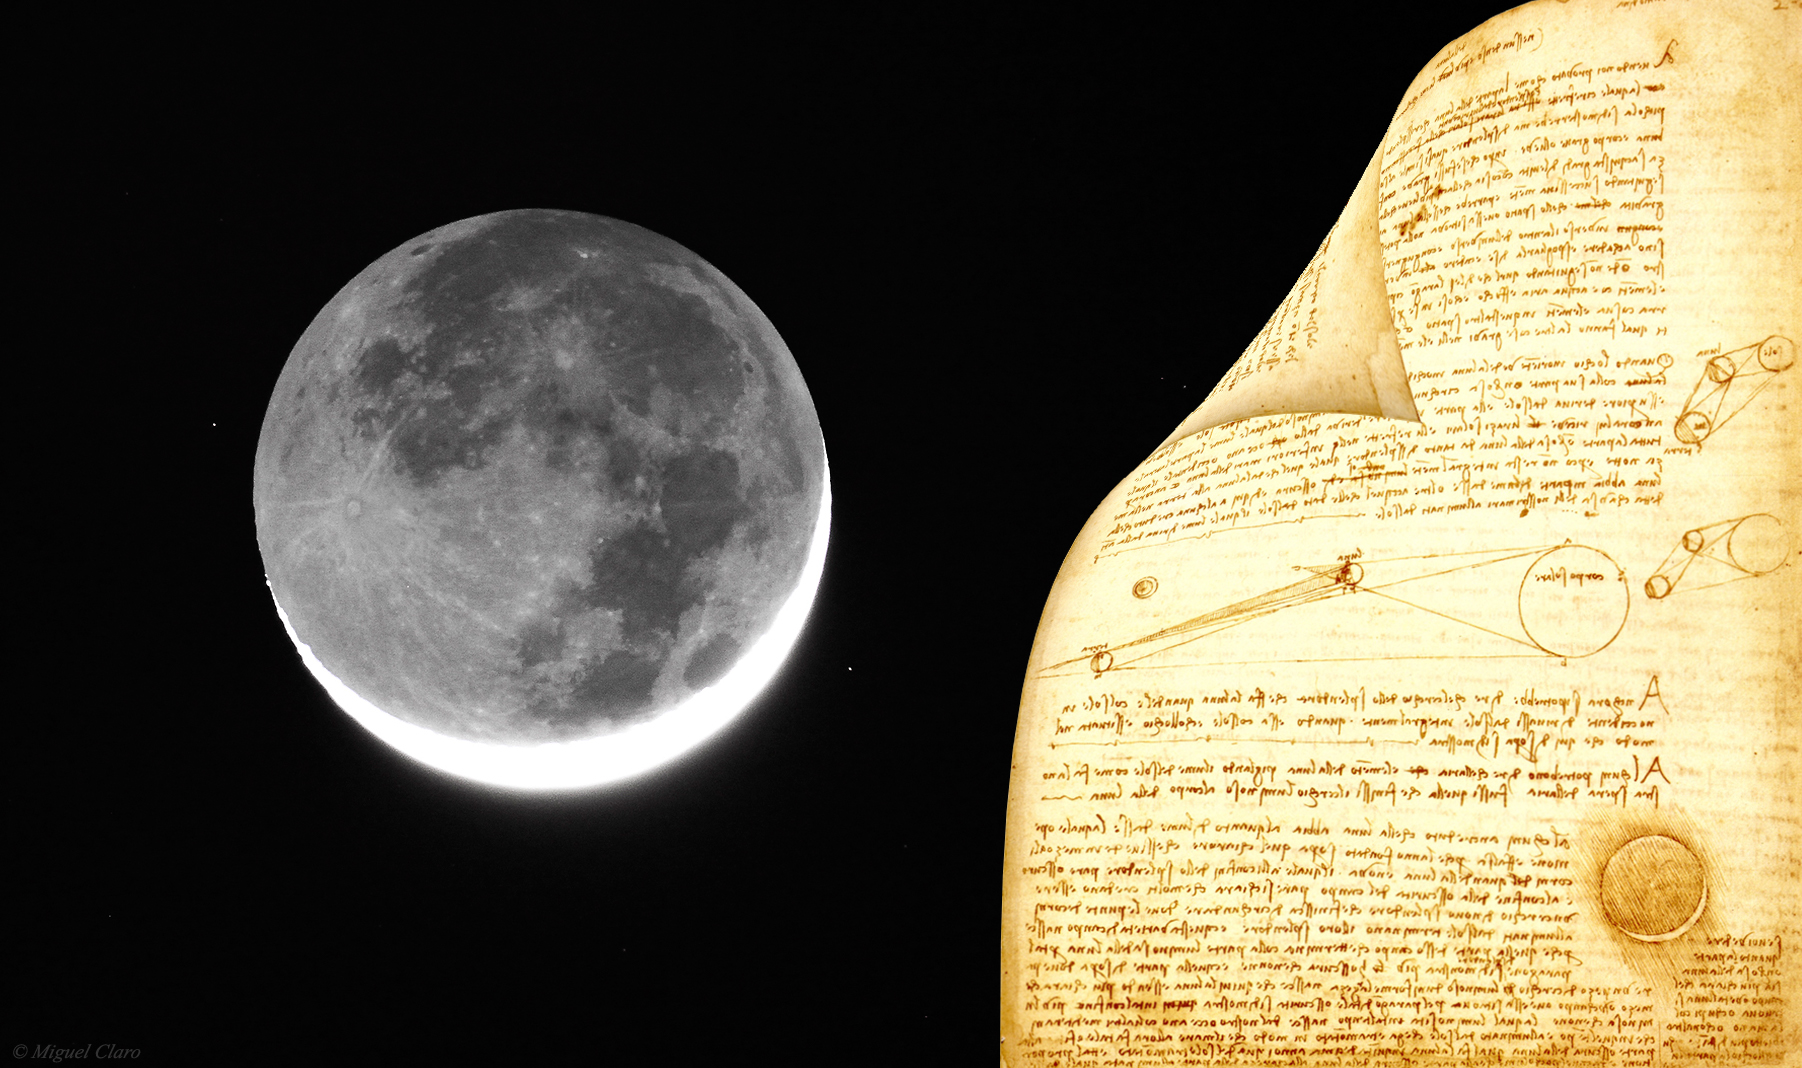 The Moon, Earthshine and Codex Leicester Composition by Miguel Claro